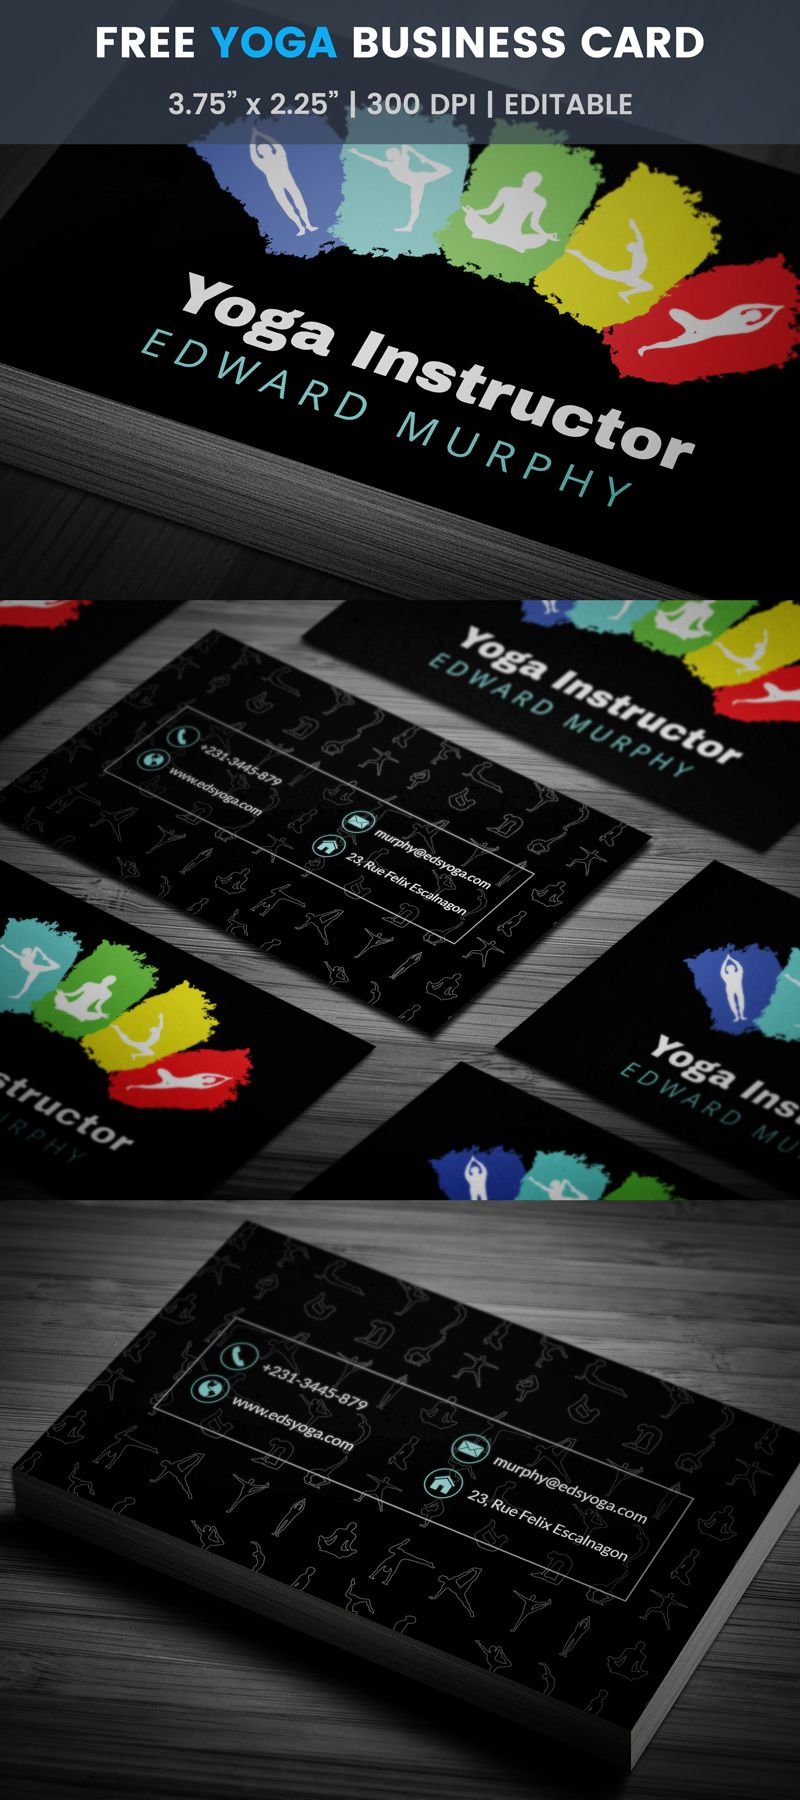 Free yoga therapy business card card templates business cards and multicolor yoga instructor business card template yoga design reheart Image collections